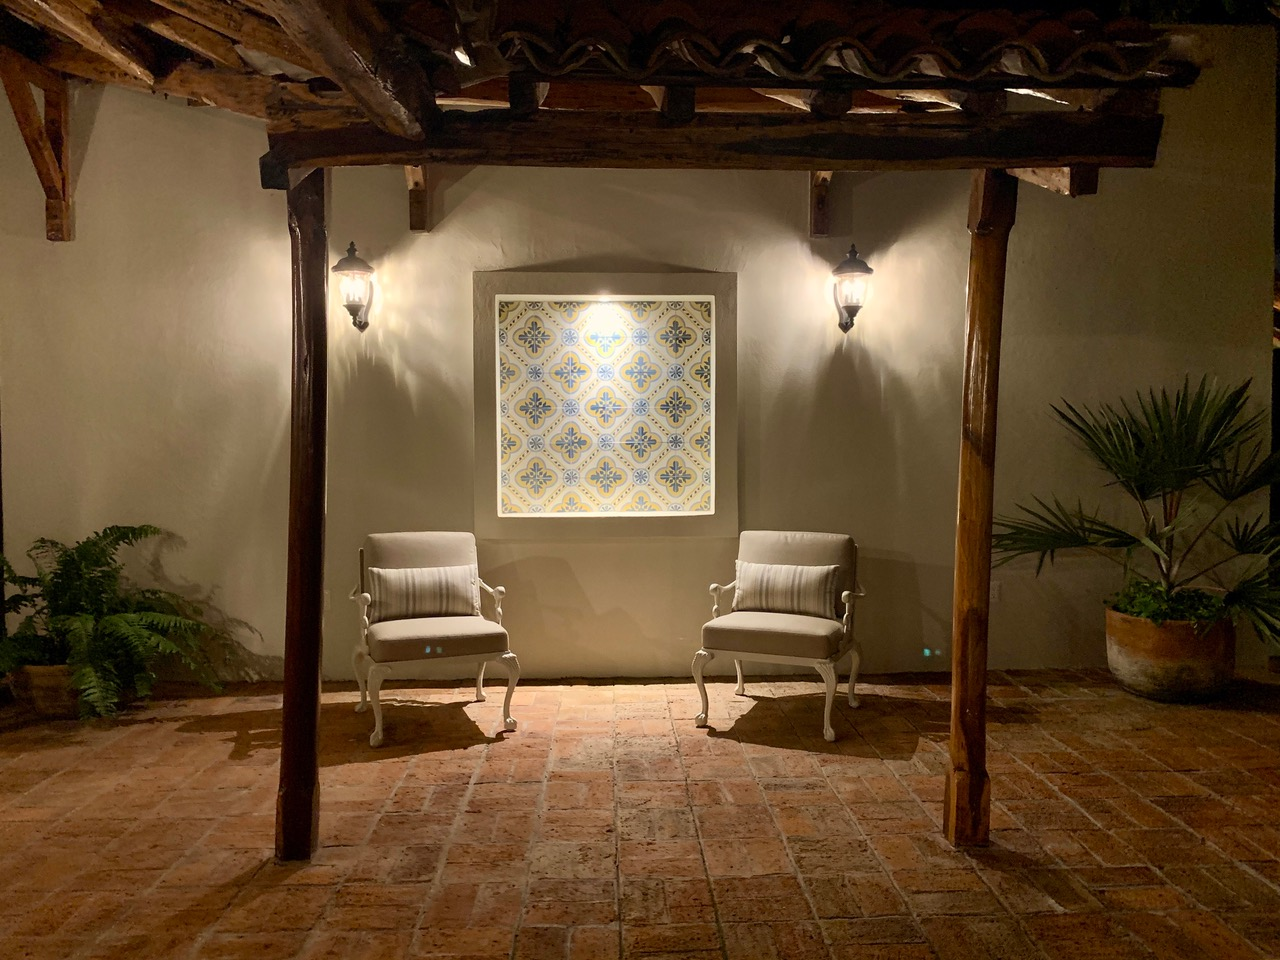 Seating outside the casita.